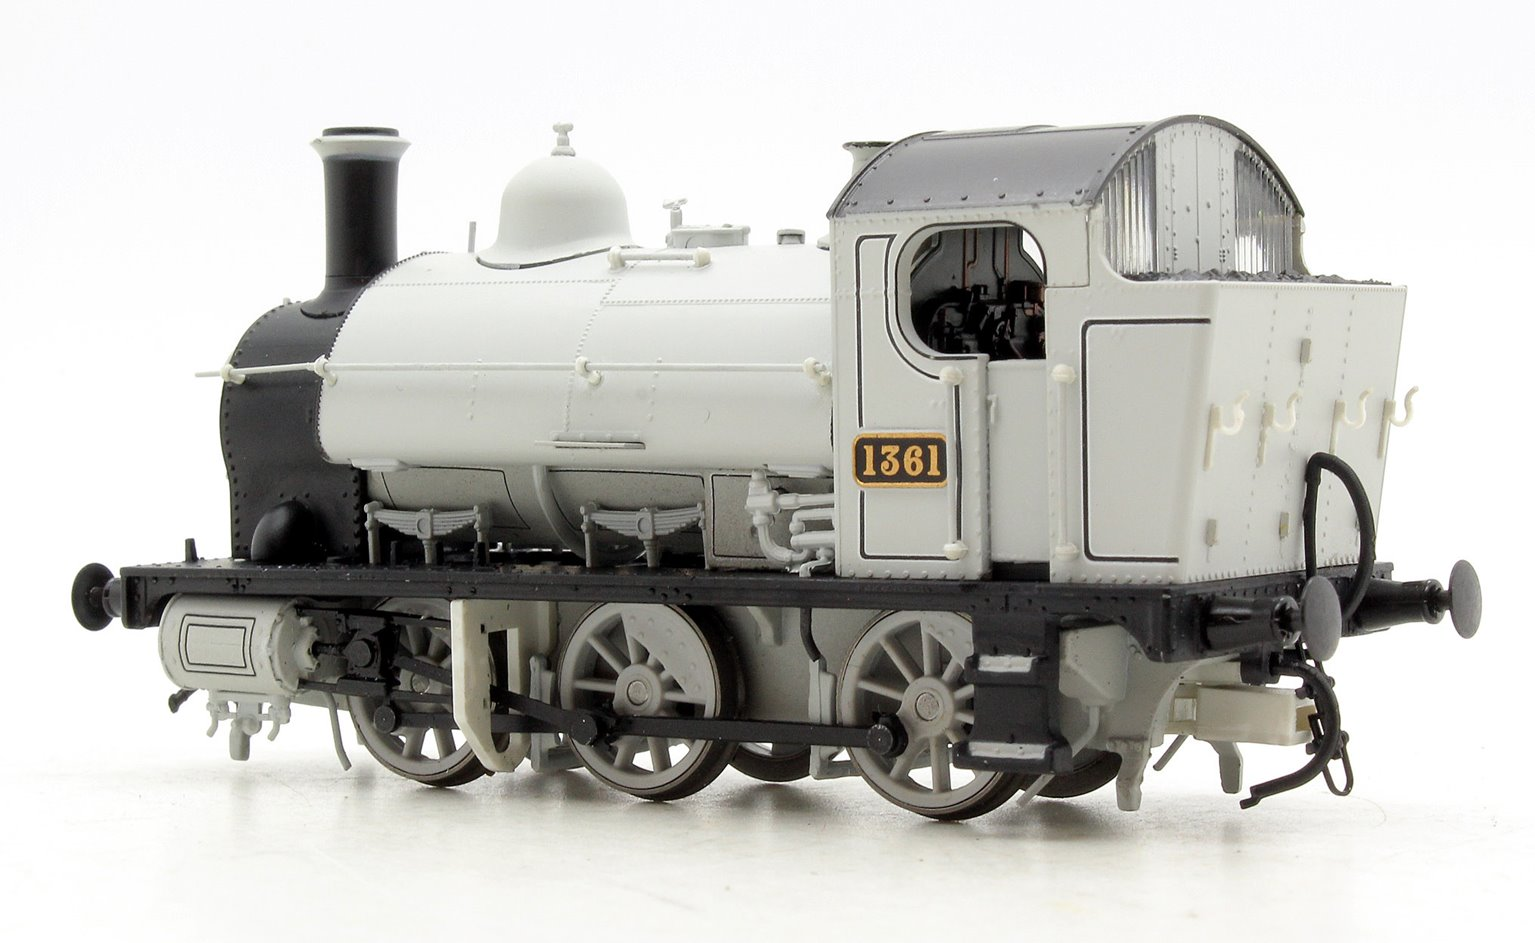 GWR 1361 Class 0-6-0 Tank Locomotive in Photographic Grey livery